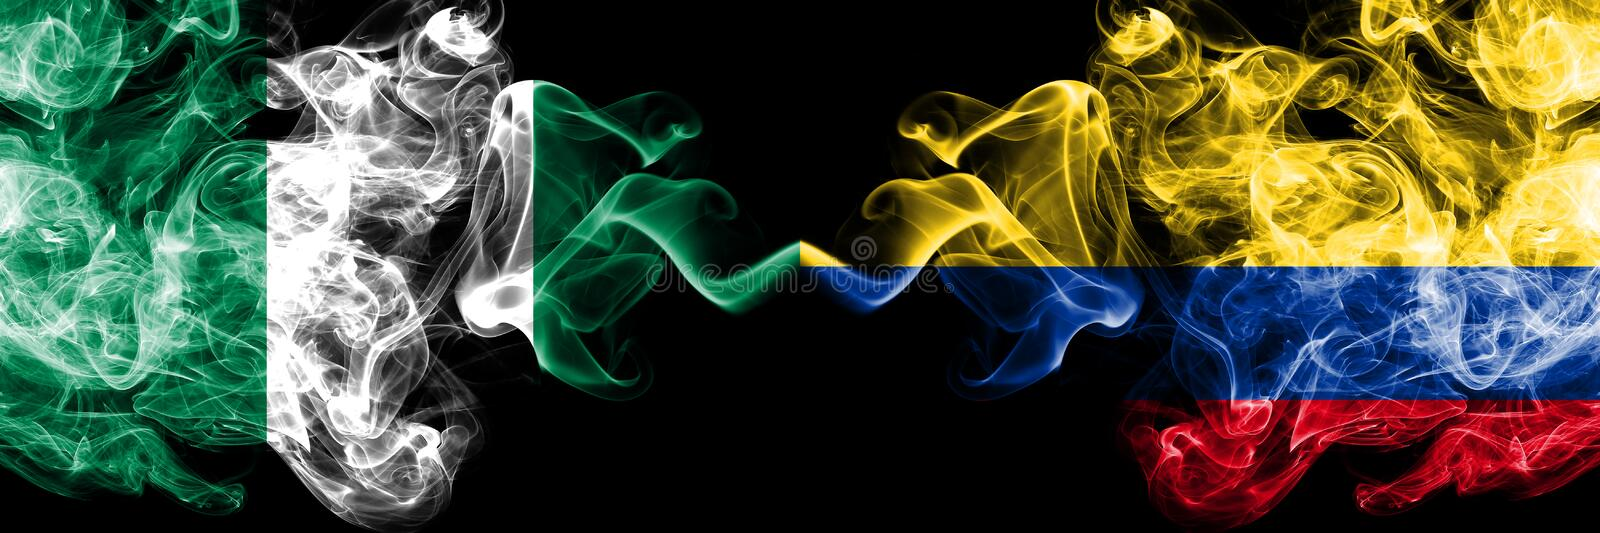 Nigeria vs Colombia, Colombian abstract smoky mystic flags placed side by side. Thick colored silky smoke flags of Nigerian and. Colombia, Colombian stock illustration